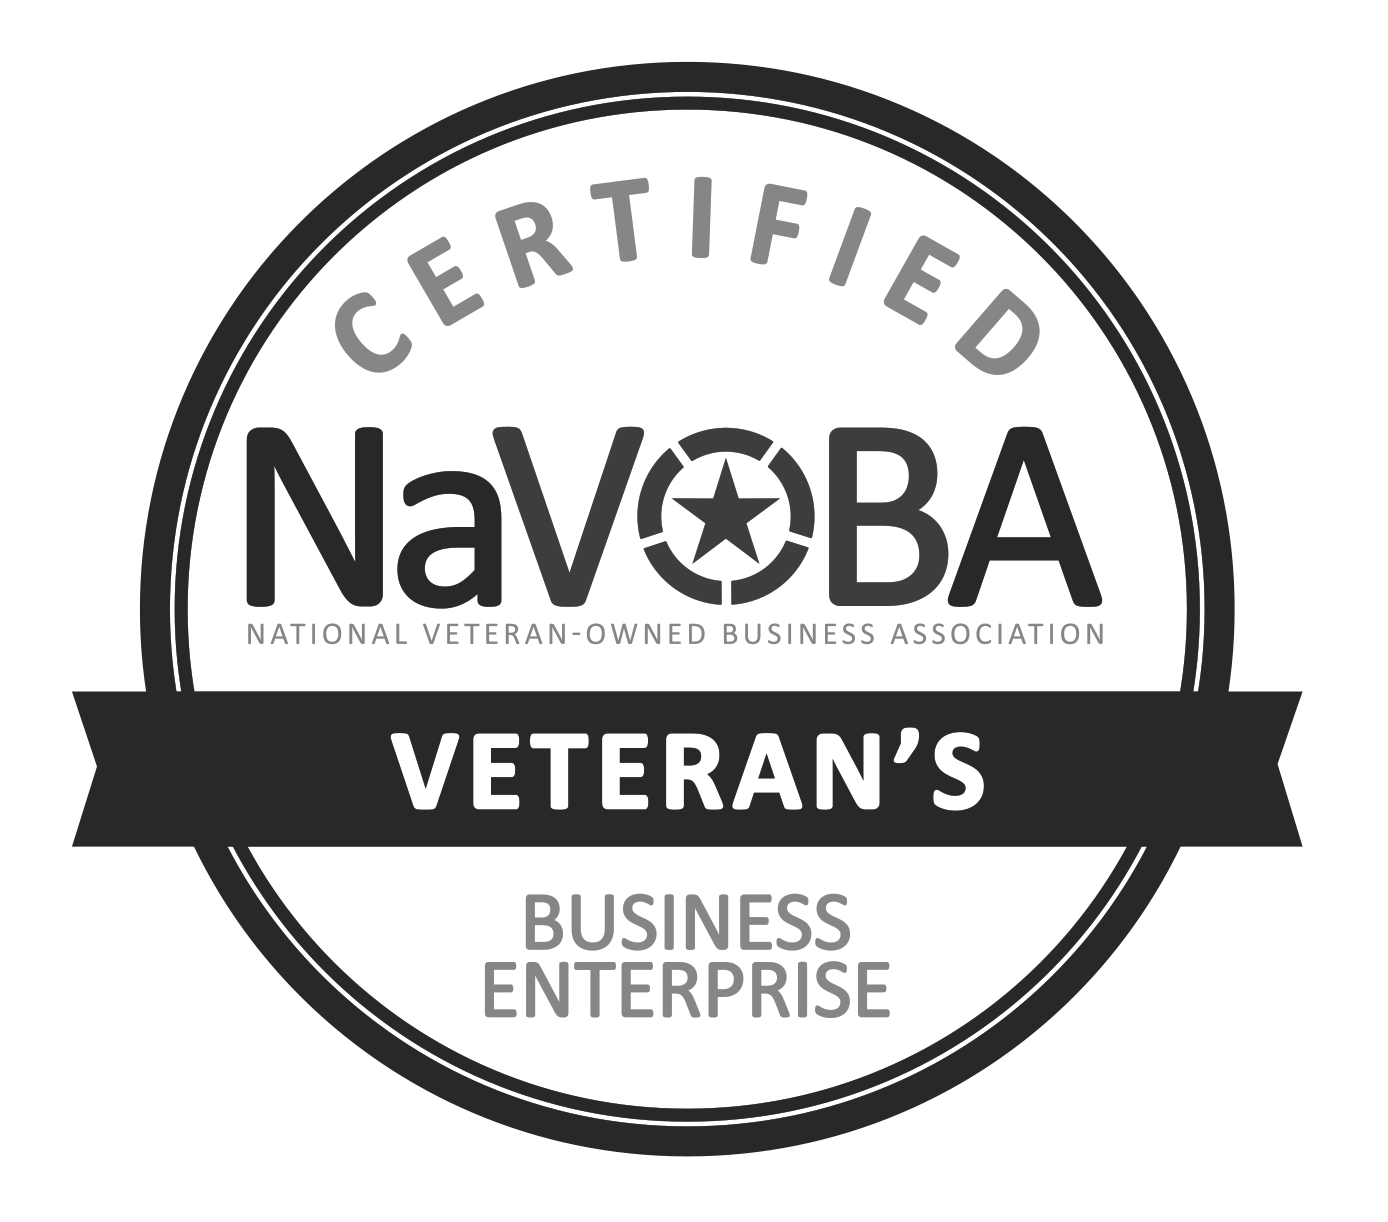 NaVOBA_Certification Veterans Seals-1